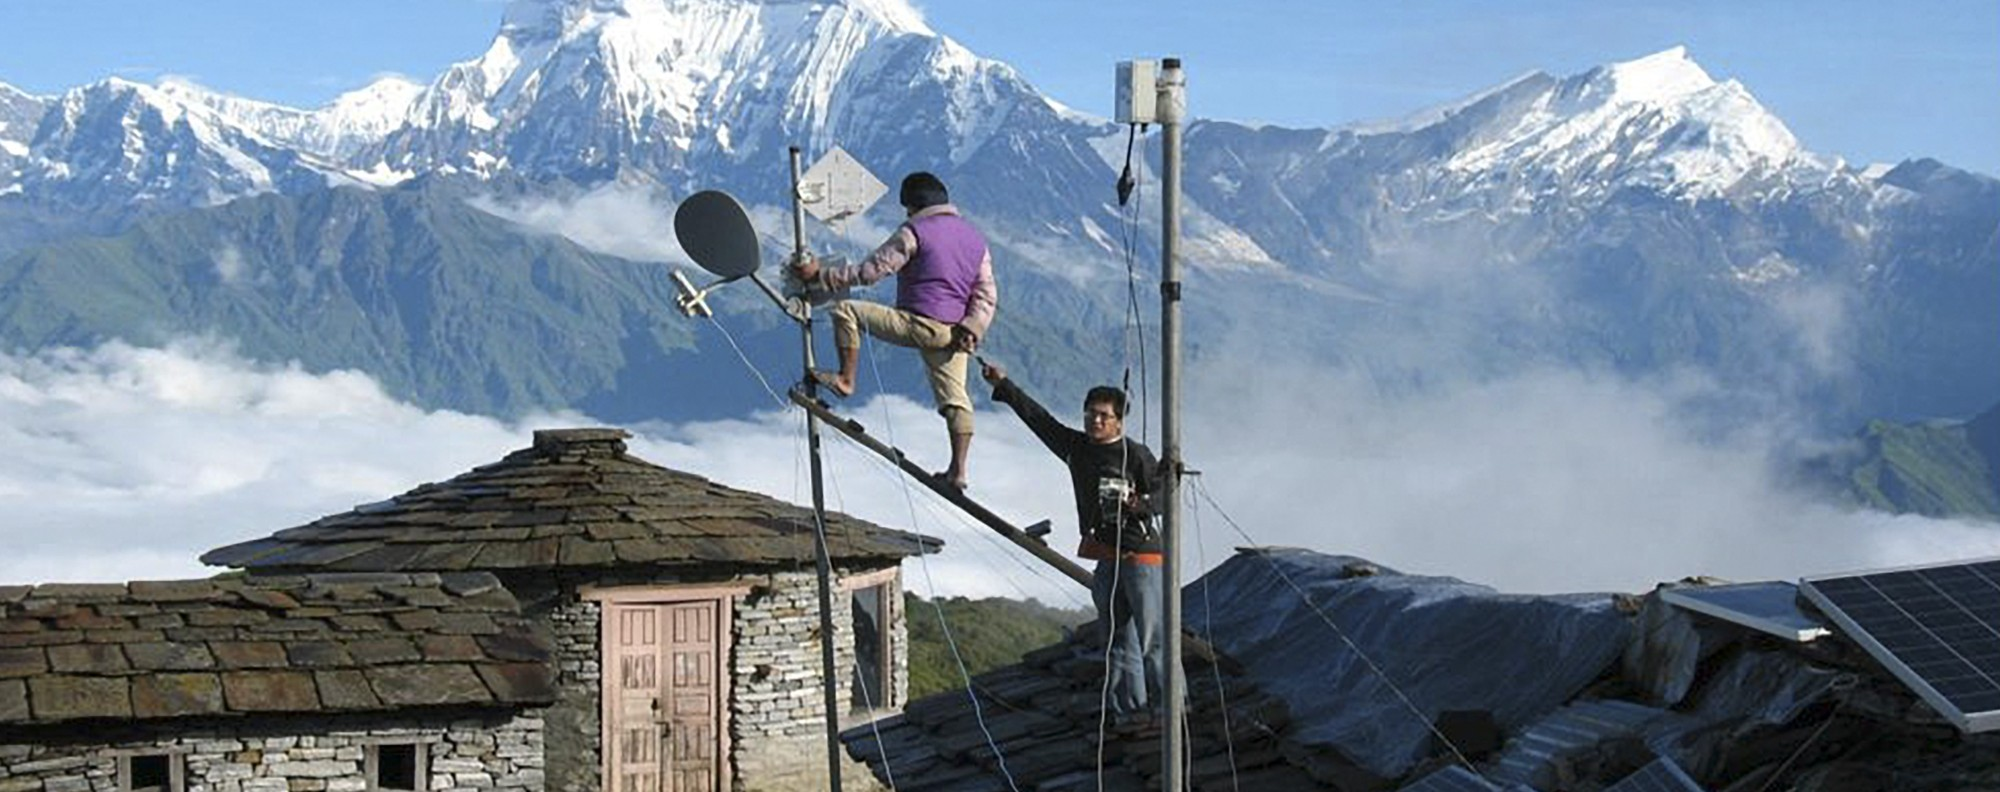 Infrastructure work in Manaslu, Nepal. Photo: Retailnewsasia.com